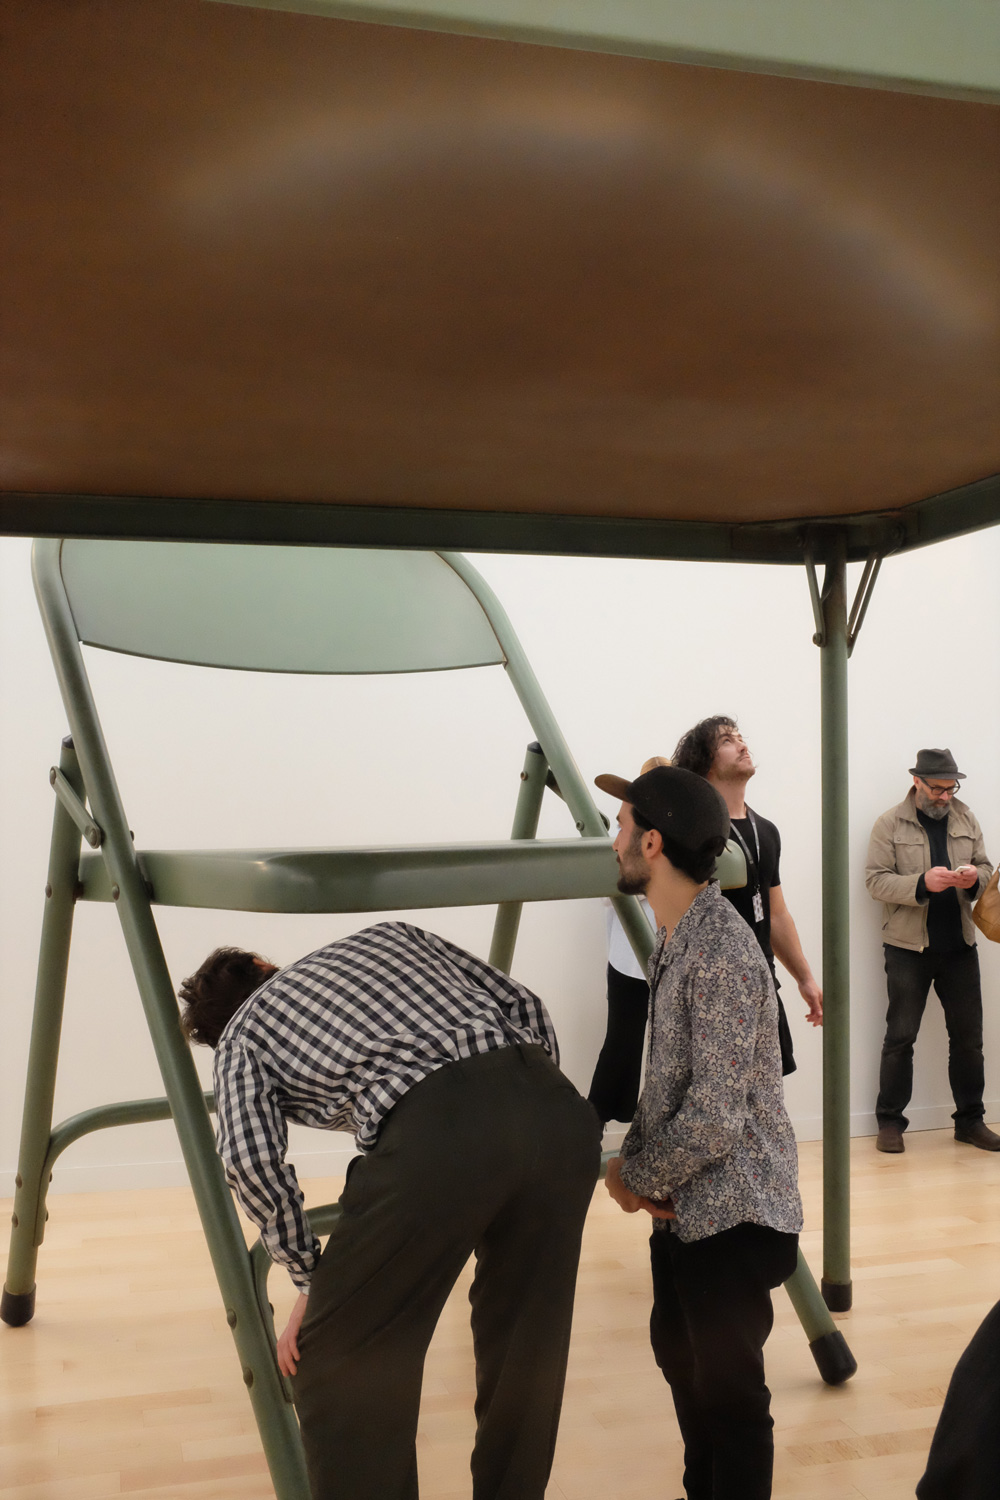 Robert Therrien, 'No title (folding table and chairs, green),' 2008, Gagosian gallery